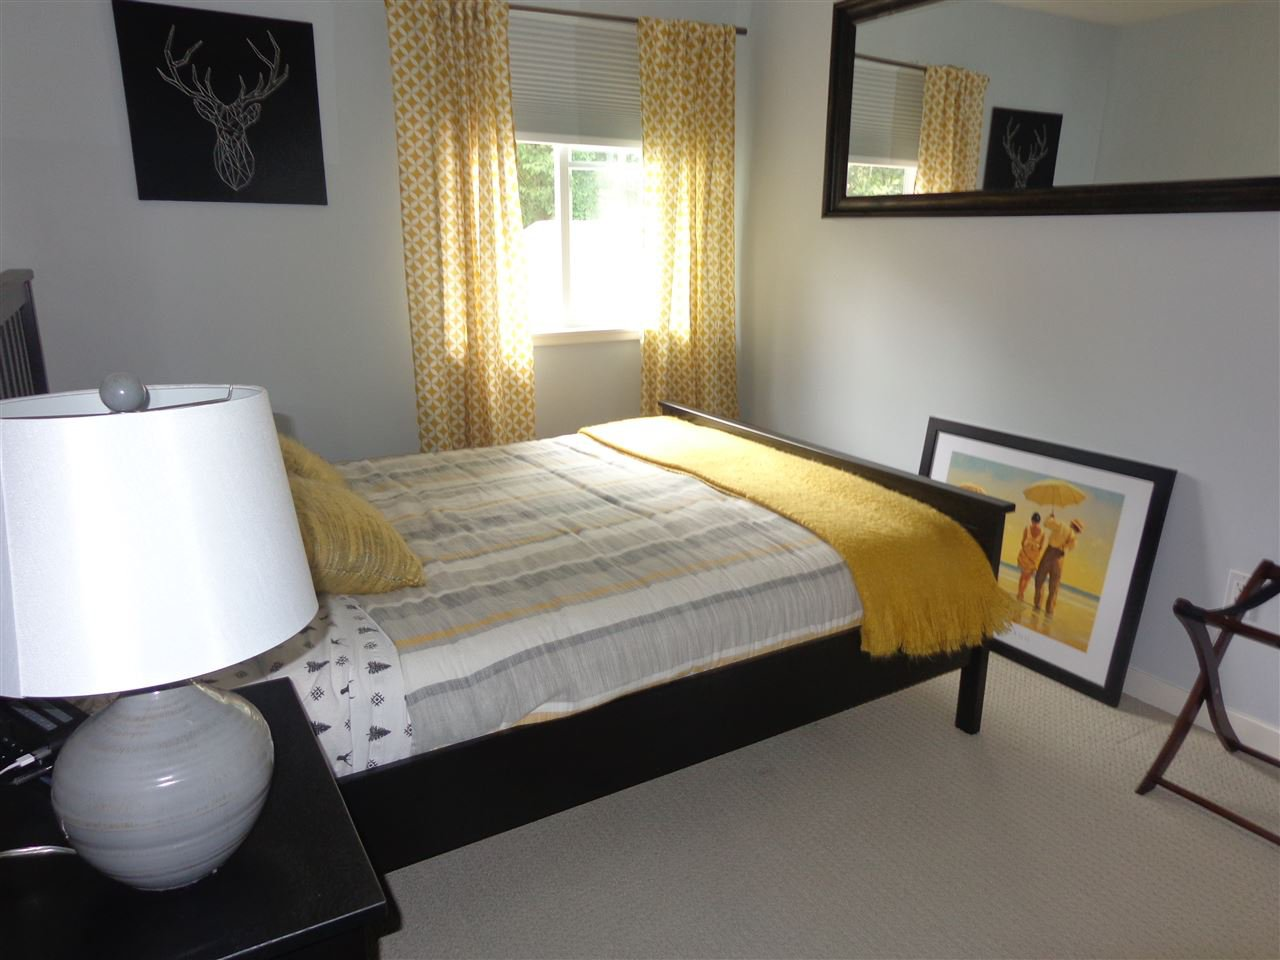 """Photo 15: Photos: 10 8588 168A Street in Surrey: Fleetwood Tynehead Townhouse for sale in """"The Brookstone"""" : MLS®# R2384013"""